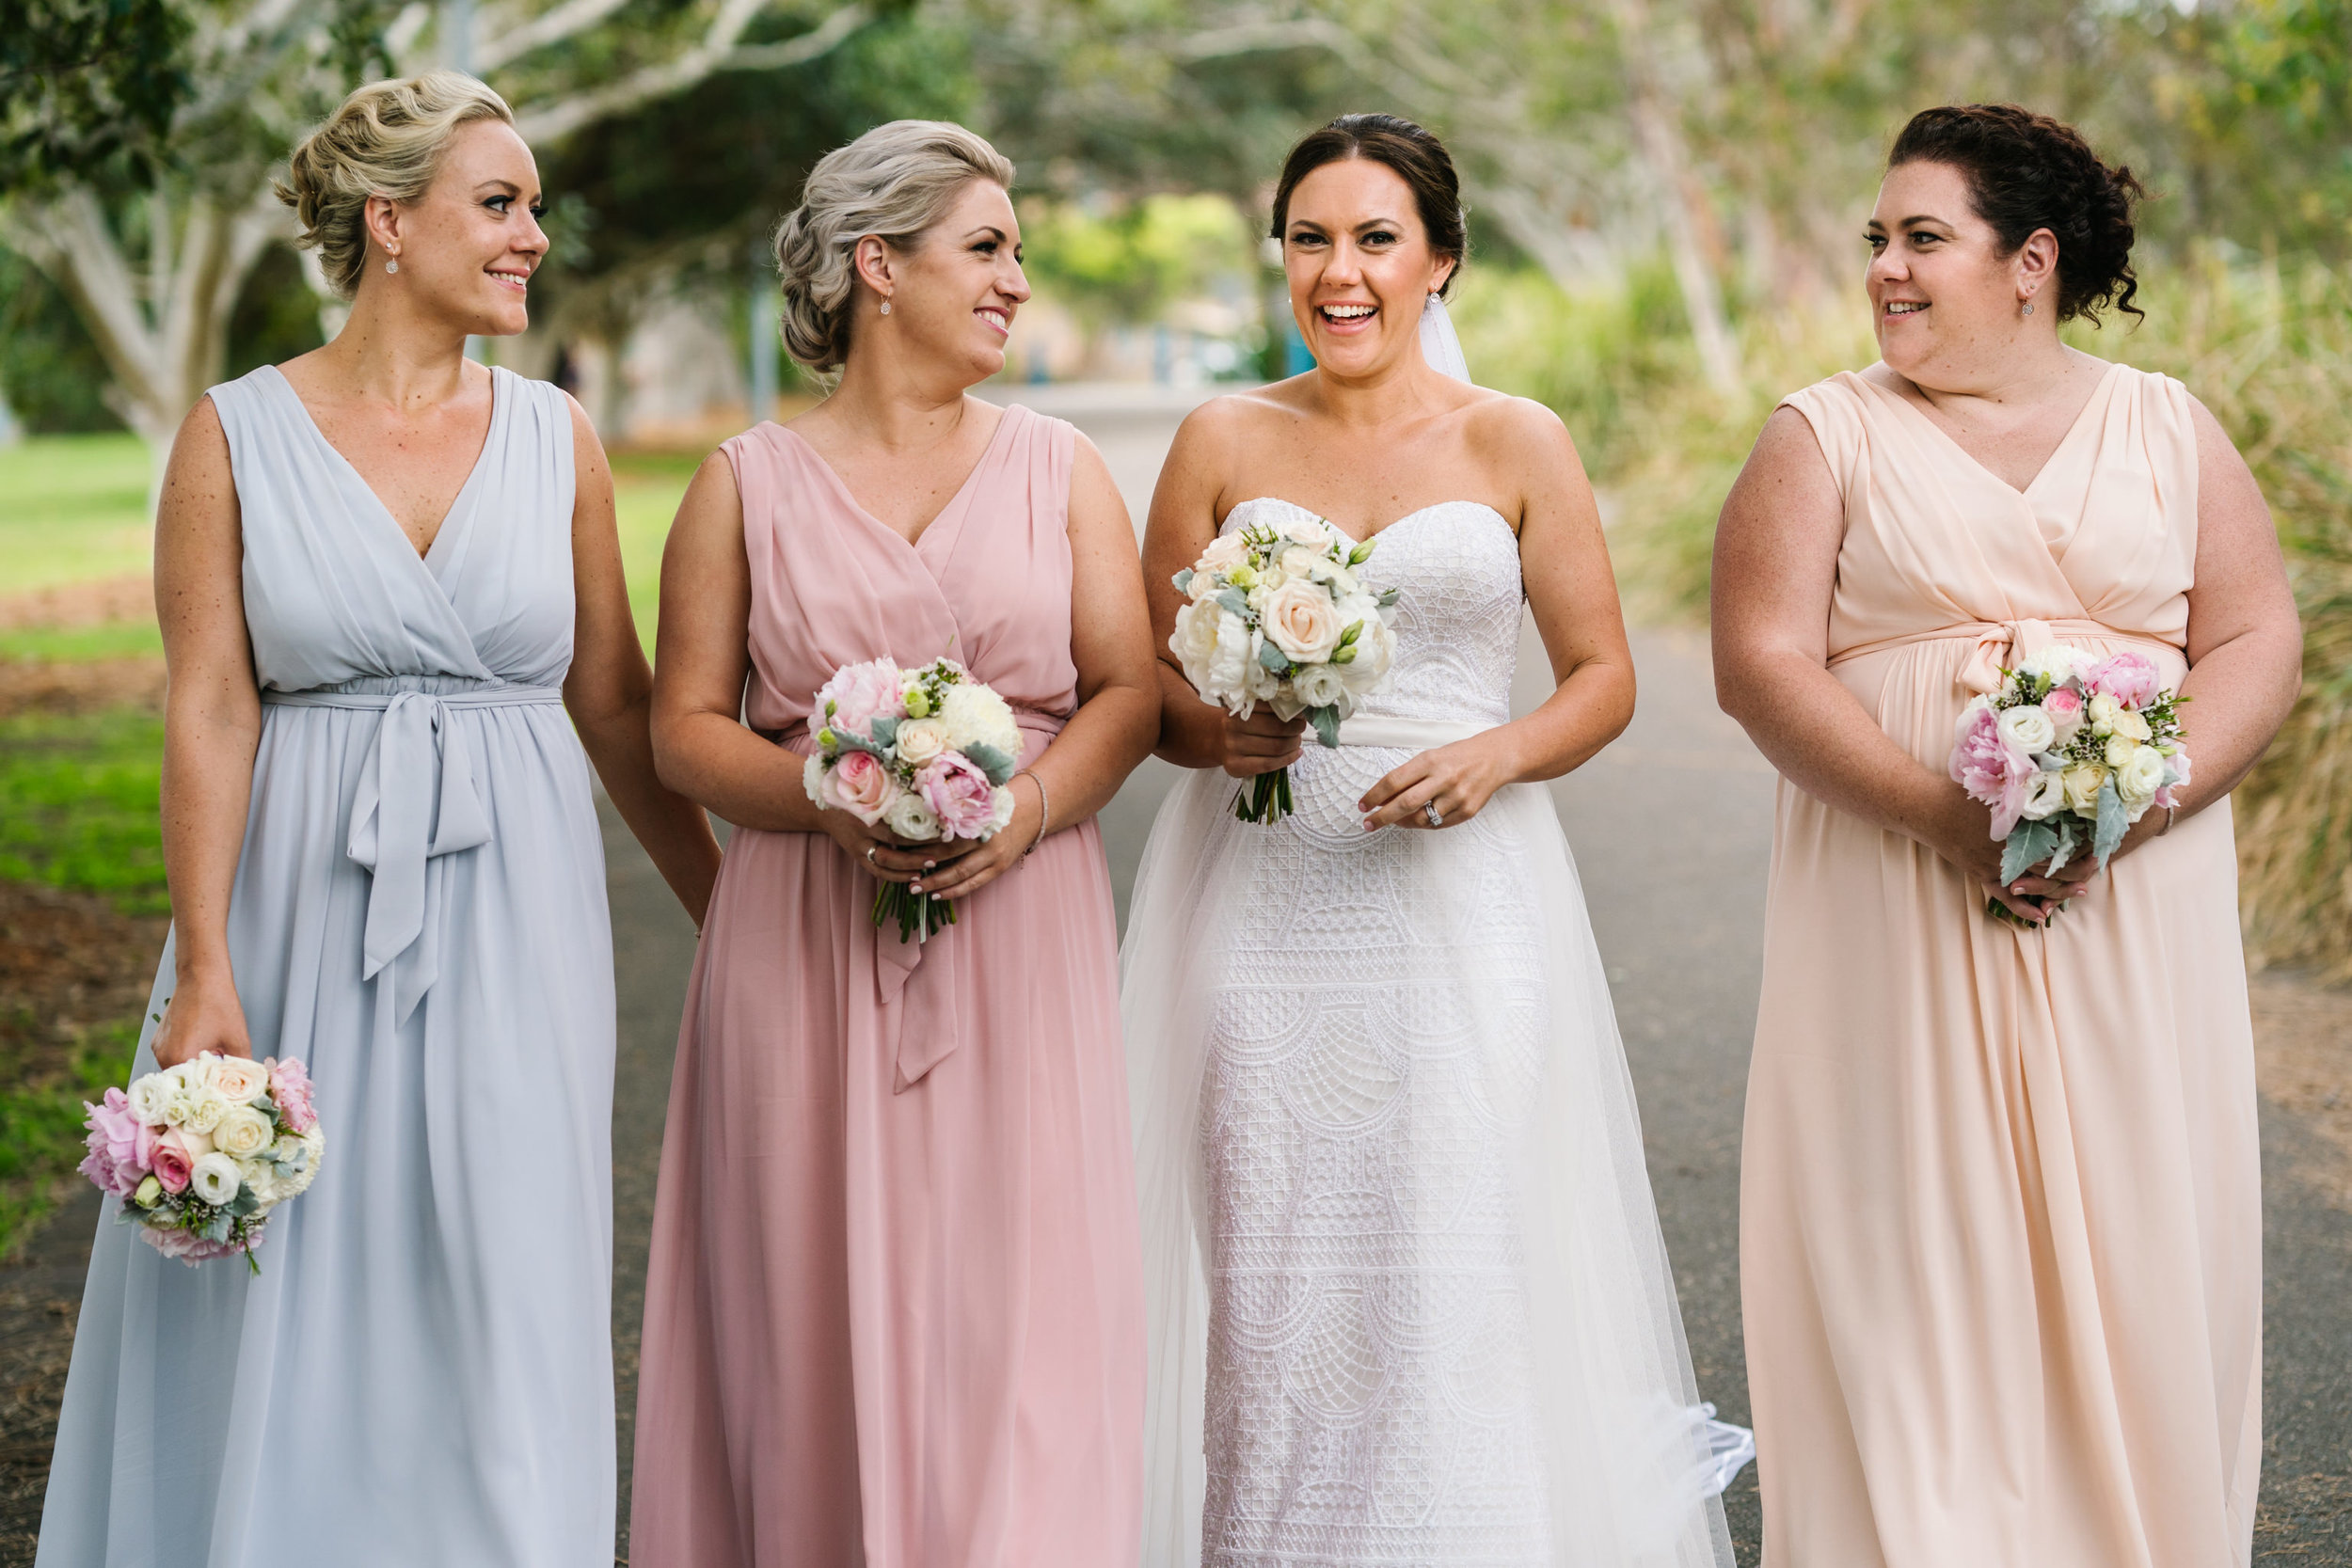 Bridesmaids in multicolour beach gowns